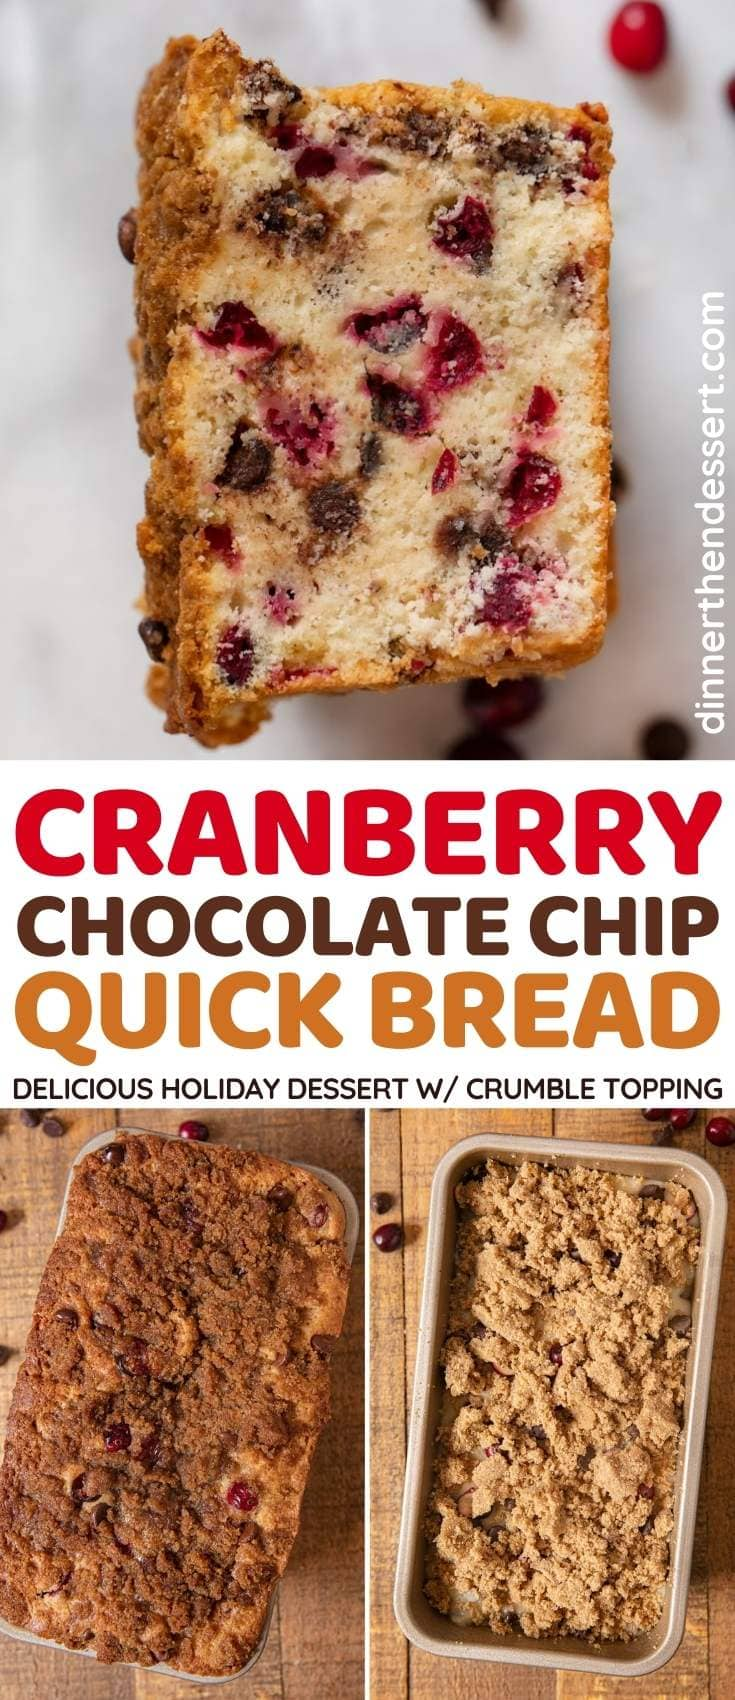 Cranberry Chocolate Chip Bread collage